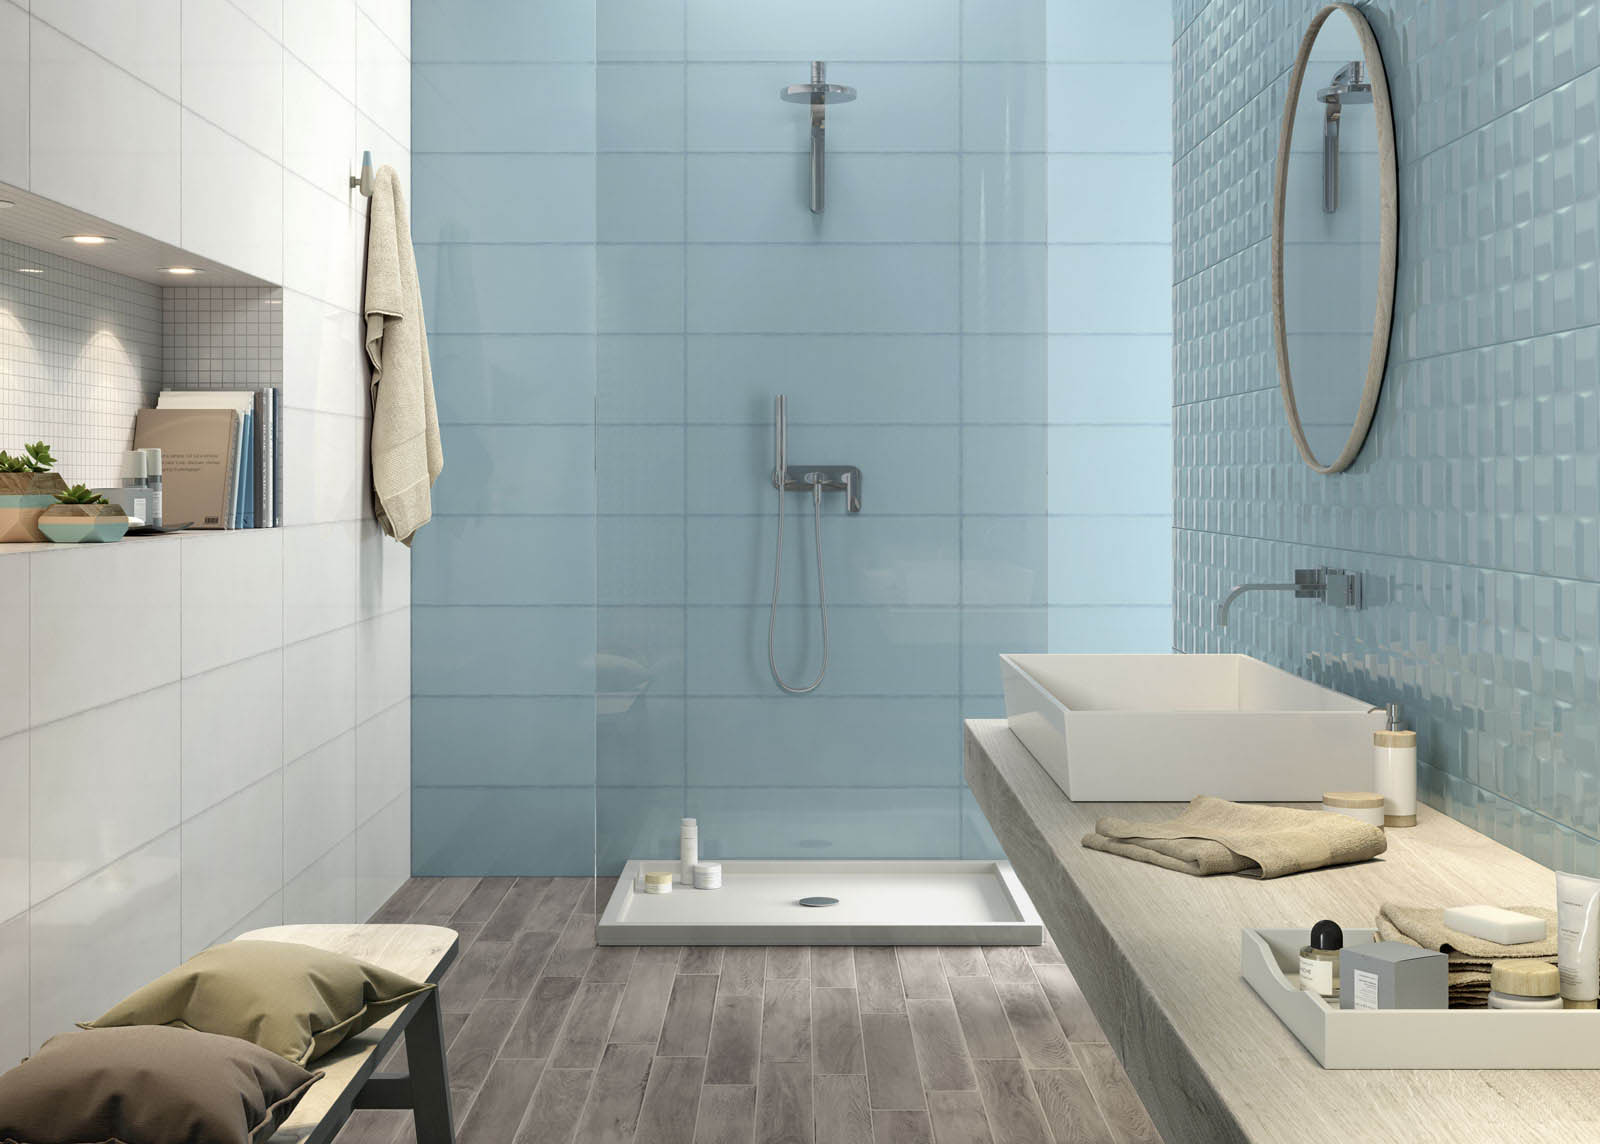 Pottery Glossy Wall Tiles